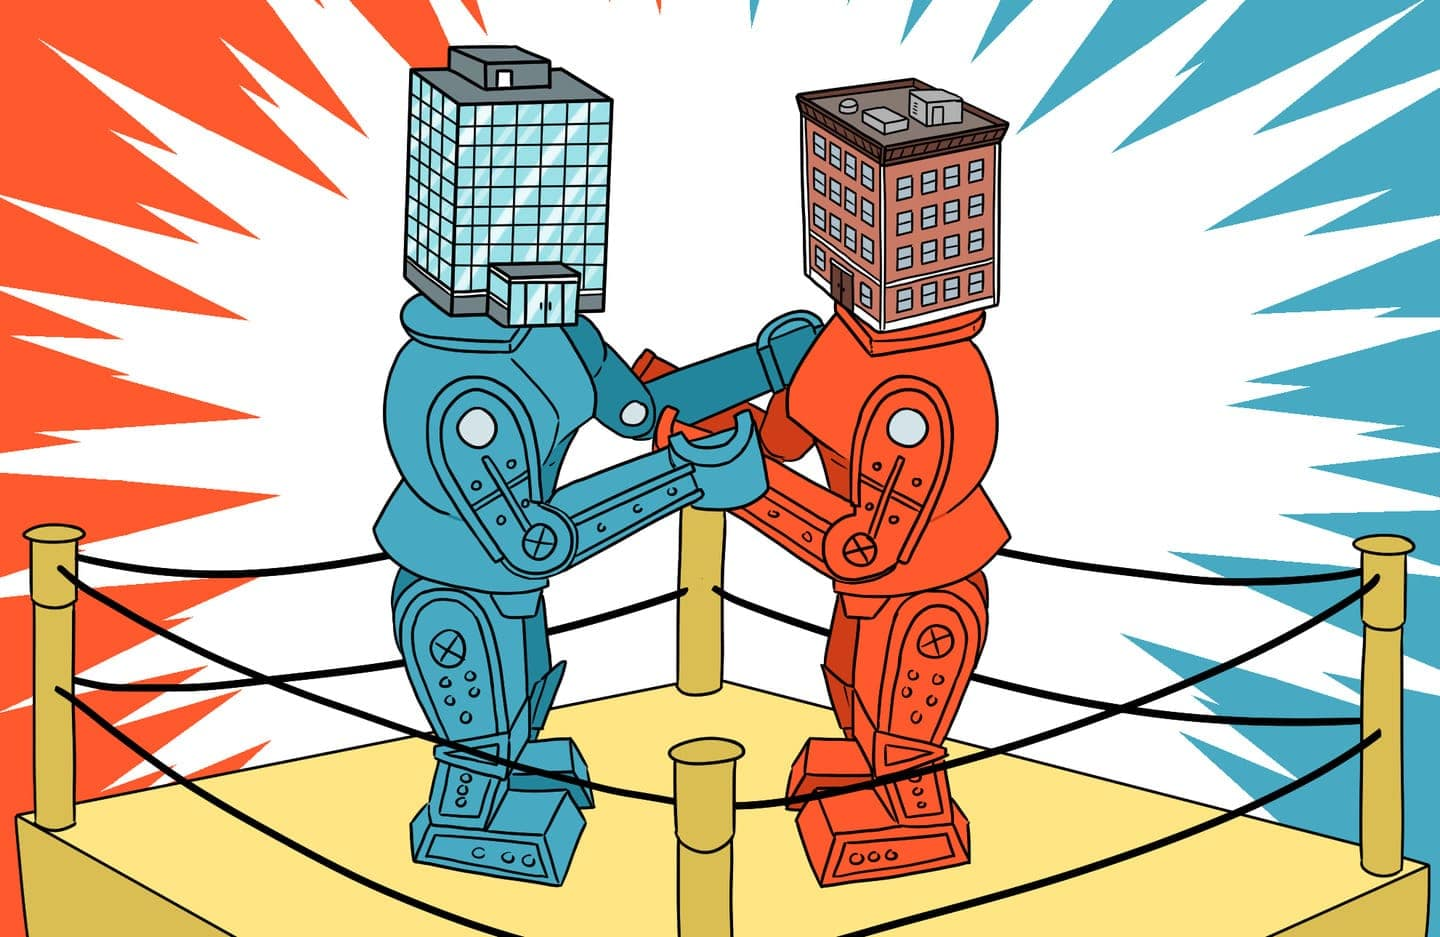 Rock'em sock'em robots toys fighting but with condo and co-op buildings for heads